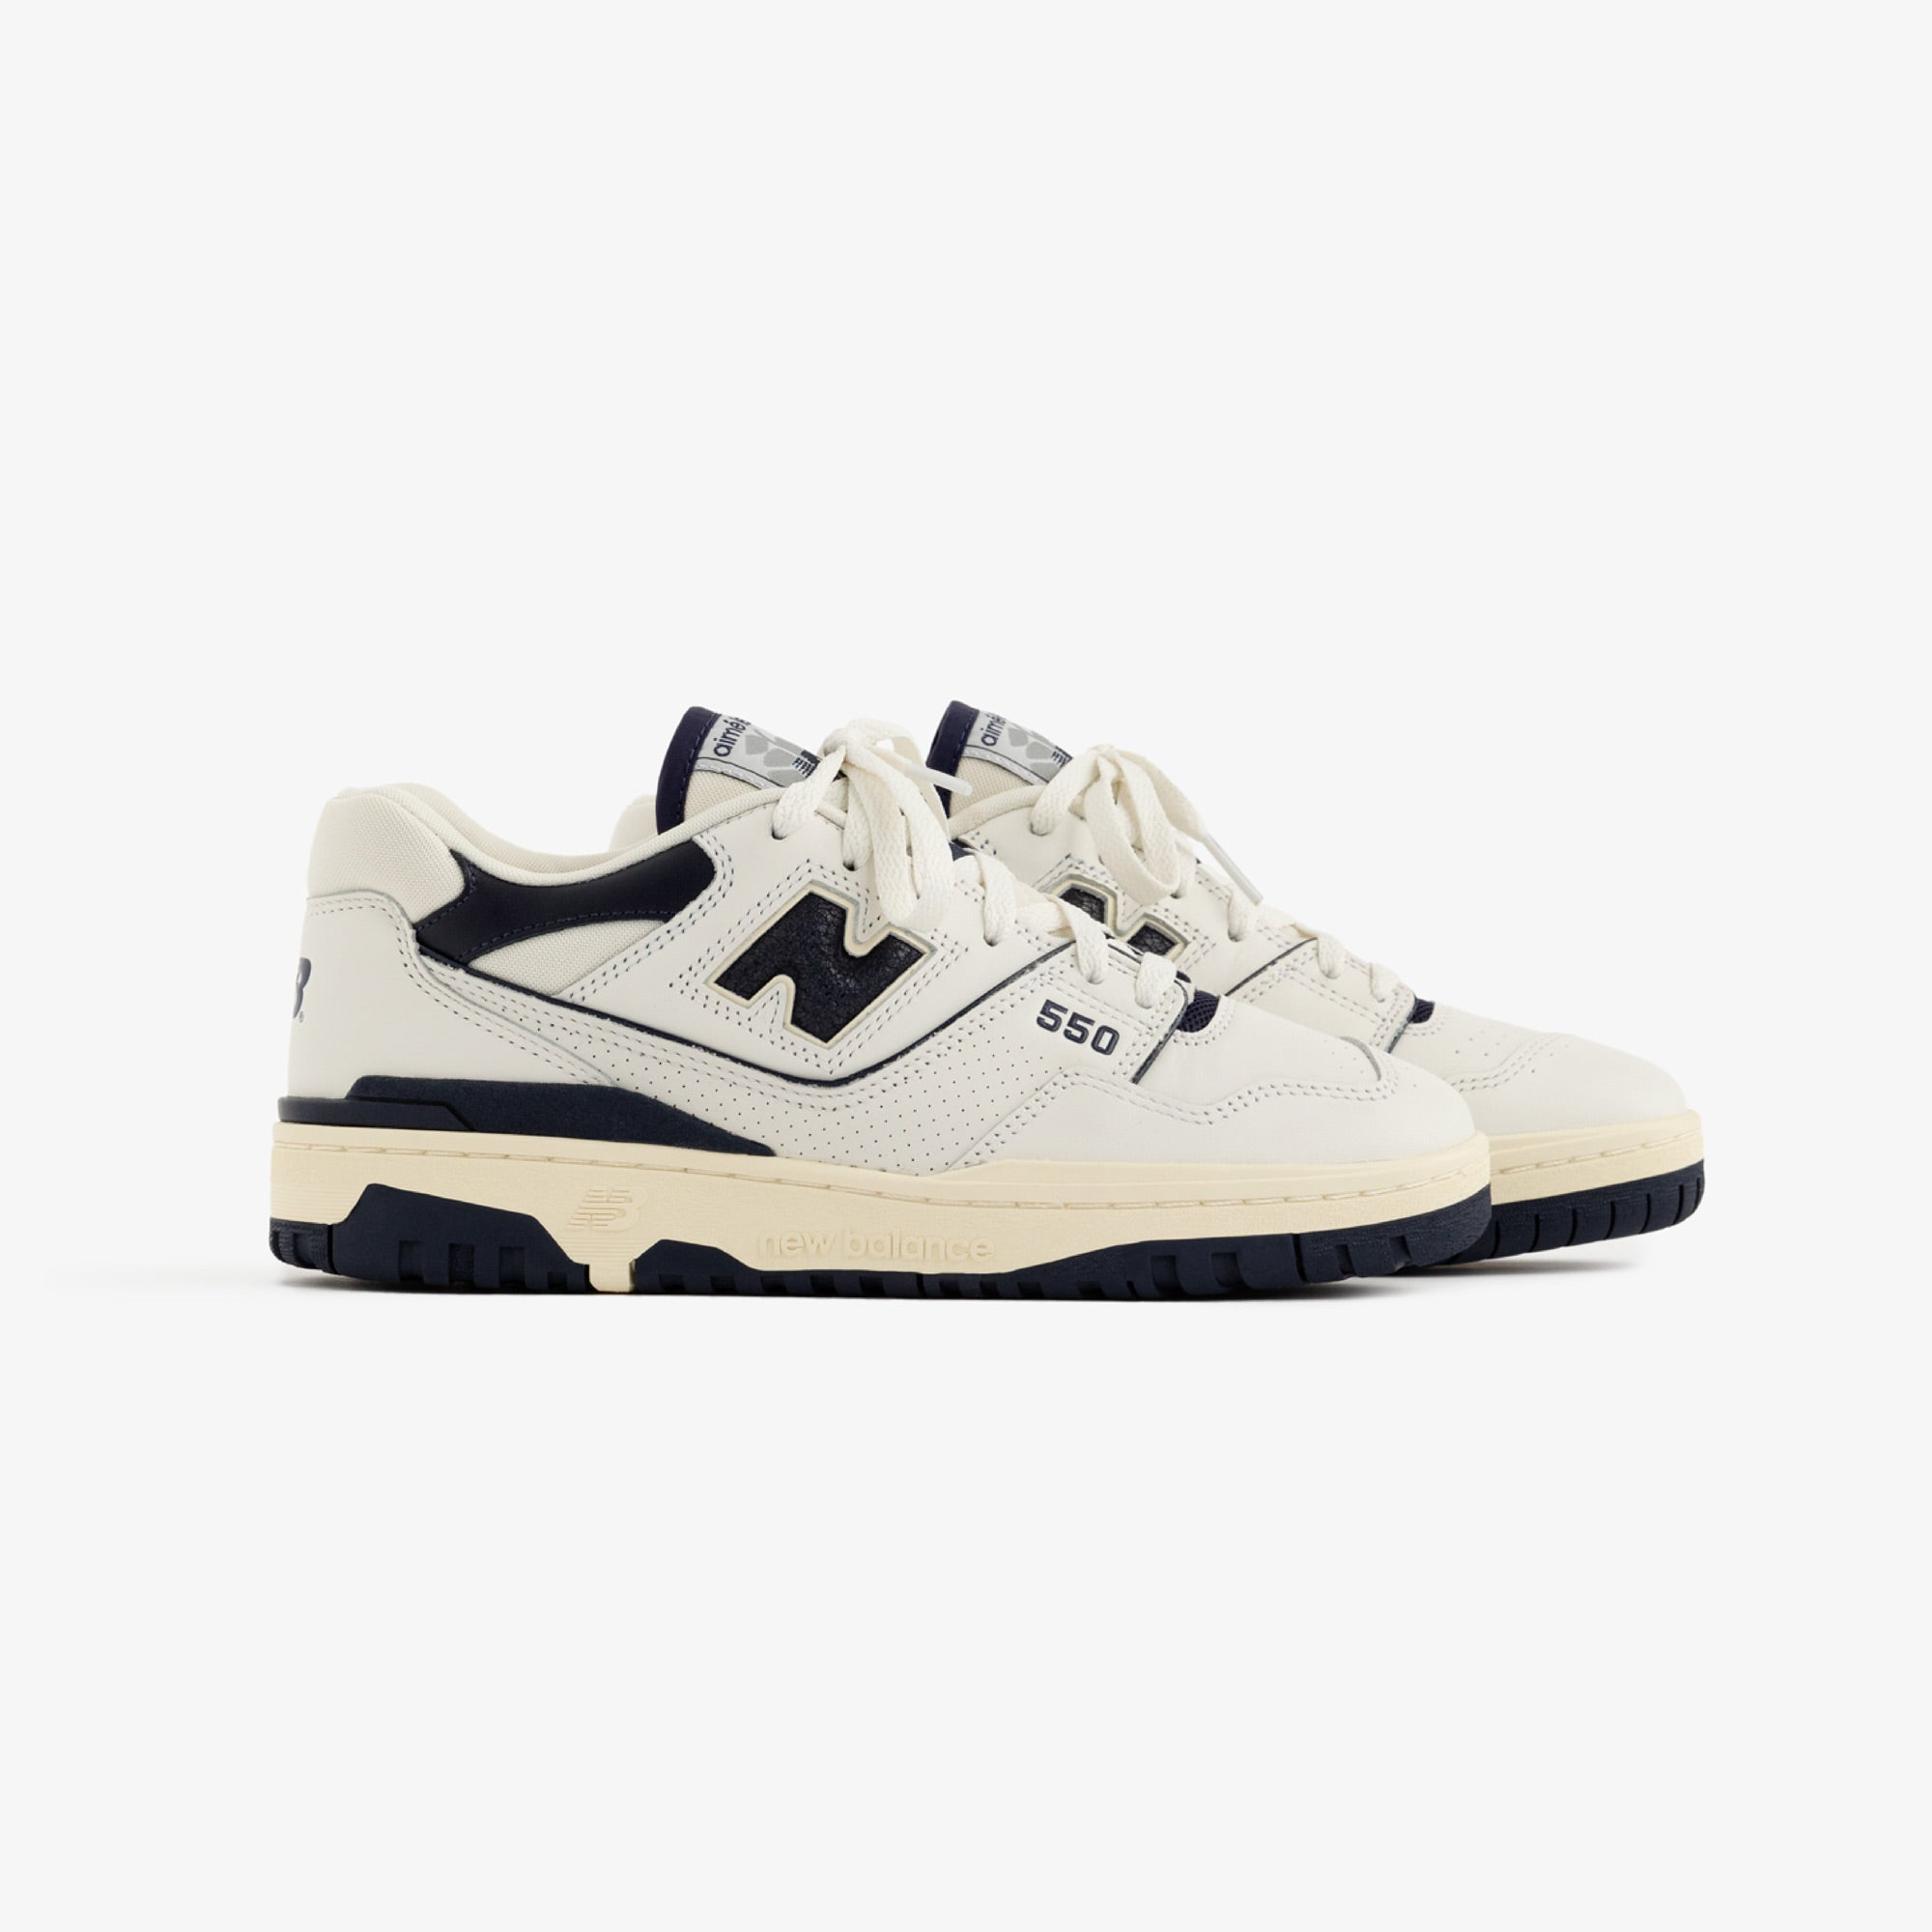 ALD / NB P550 Basketball Oxfords